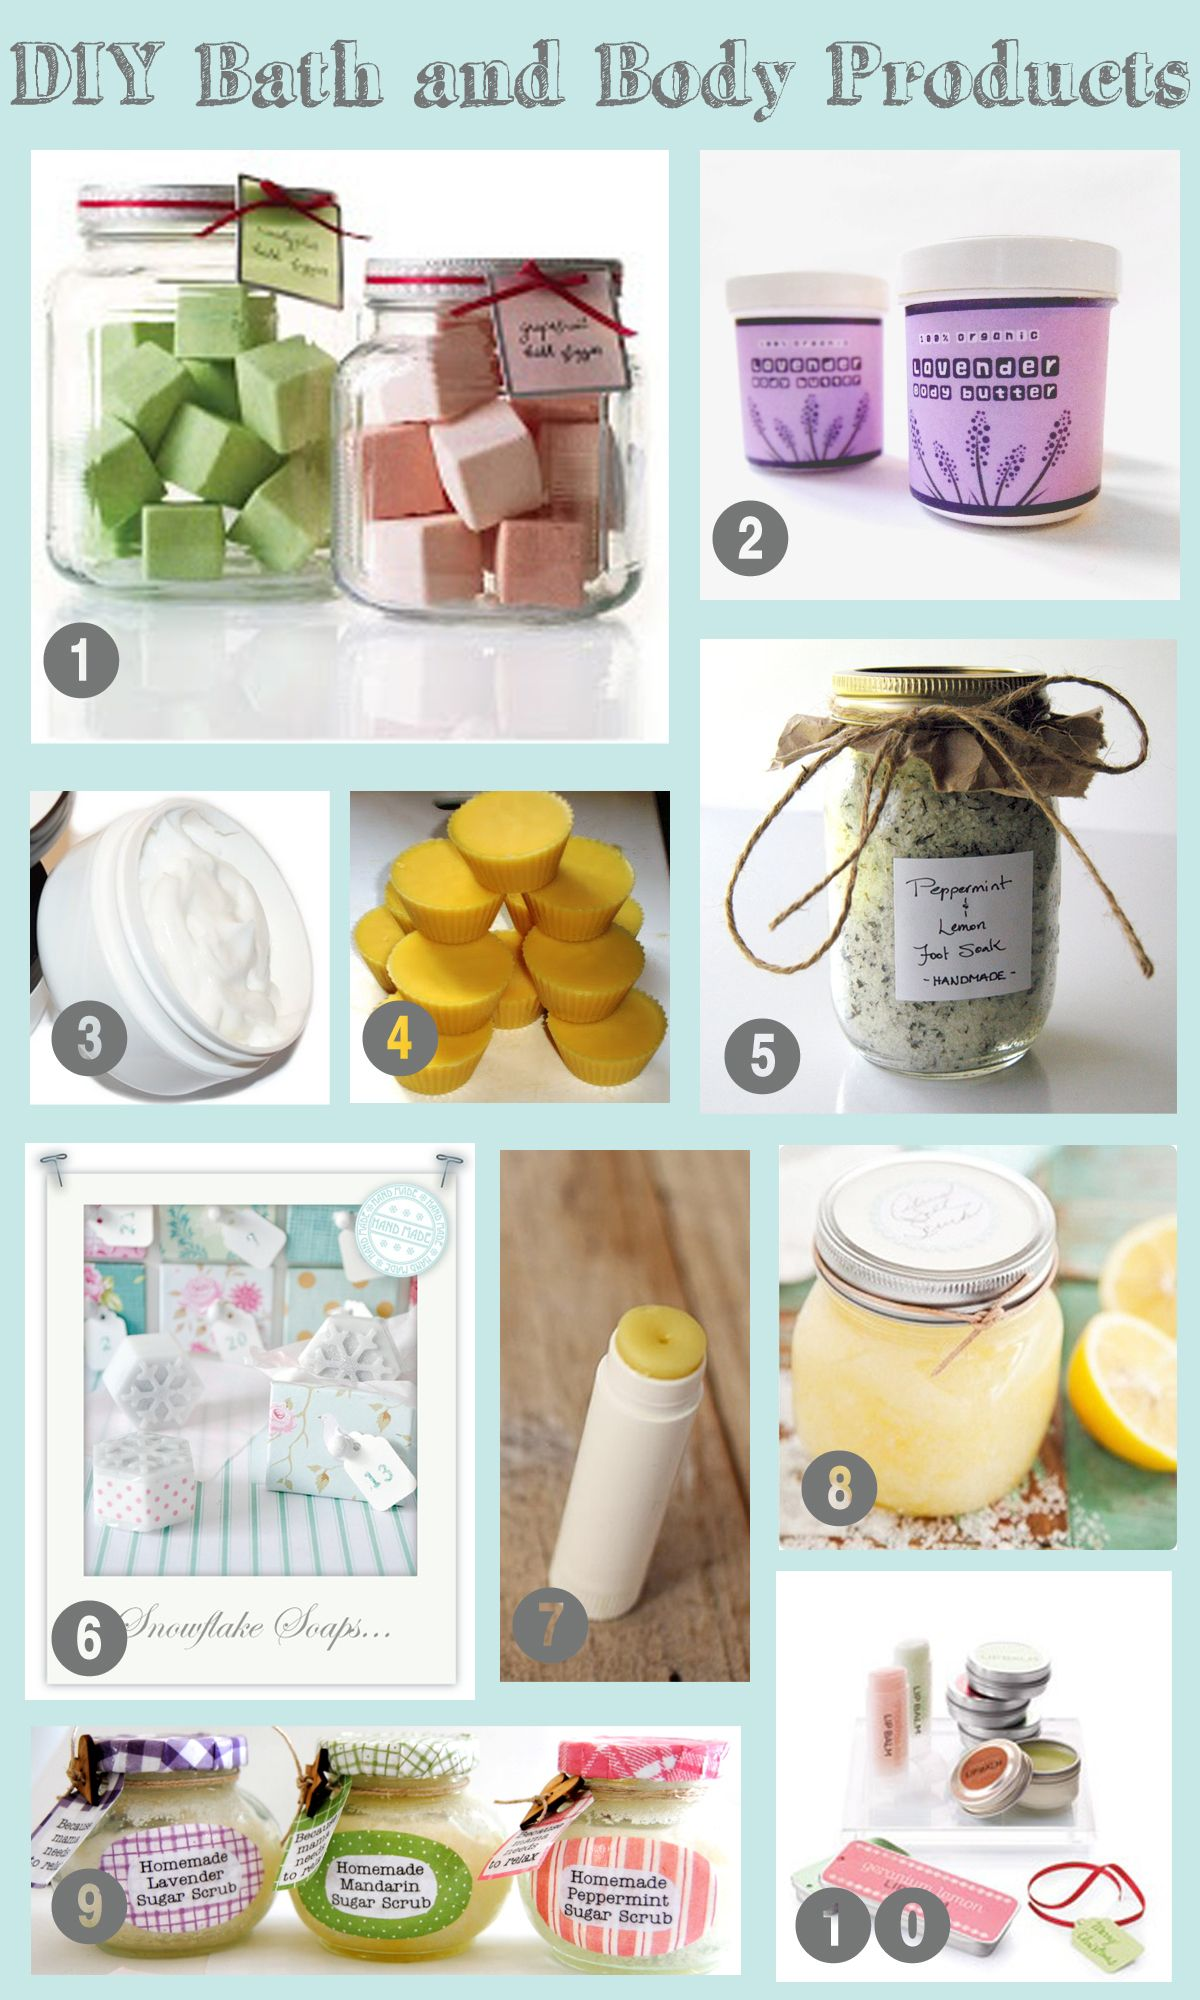 Diy bath body products lavender peppermint foot cream pamper yourself or make them for gifts diy bath and body product list with links to instructions solutioingenieria Images